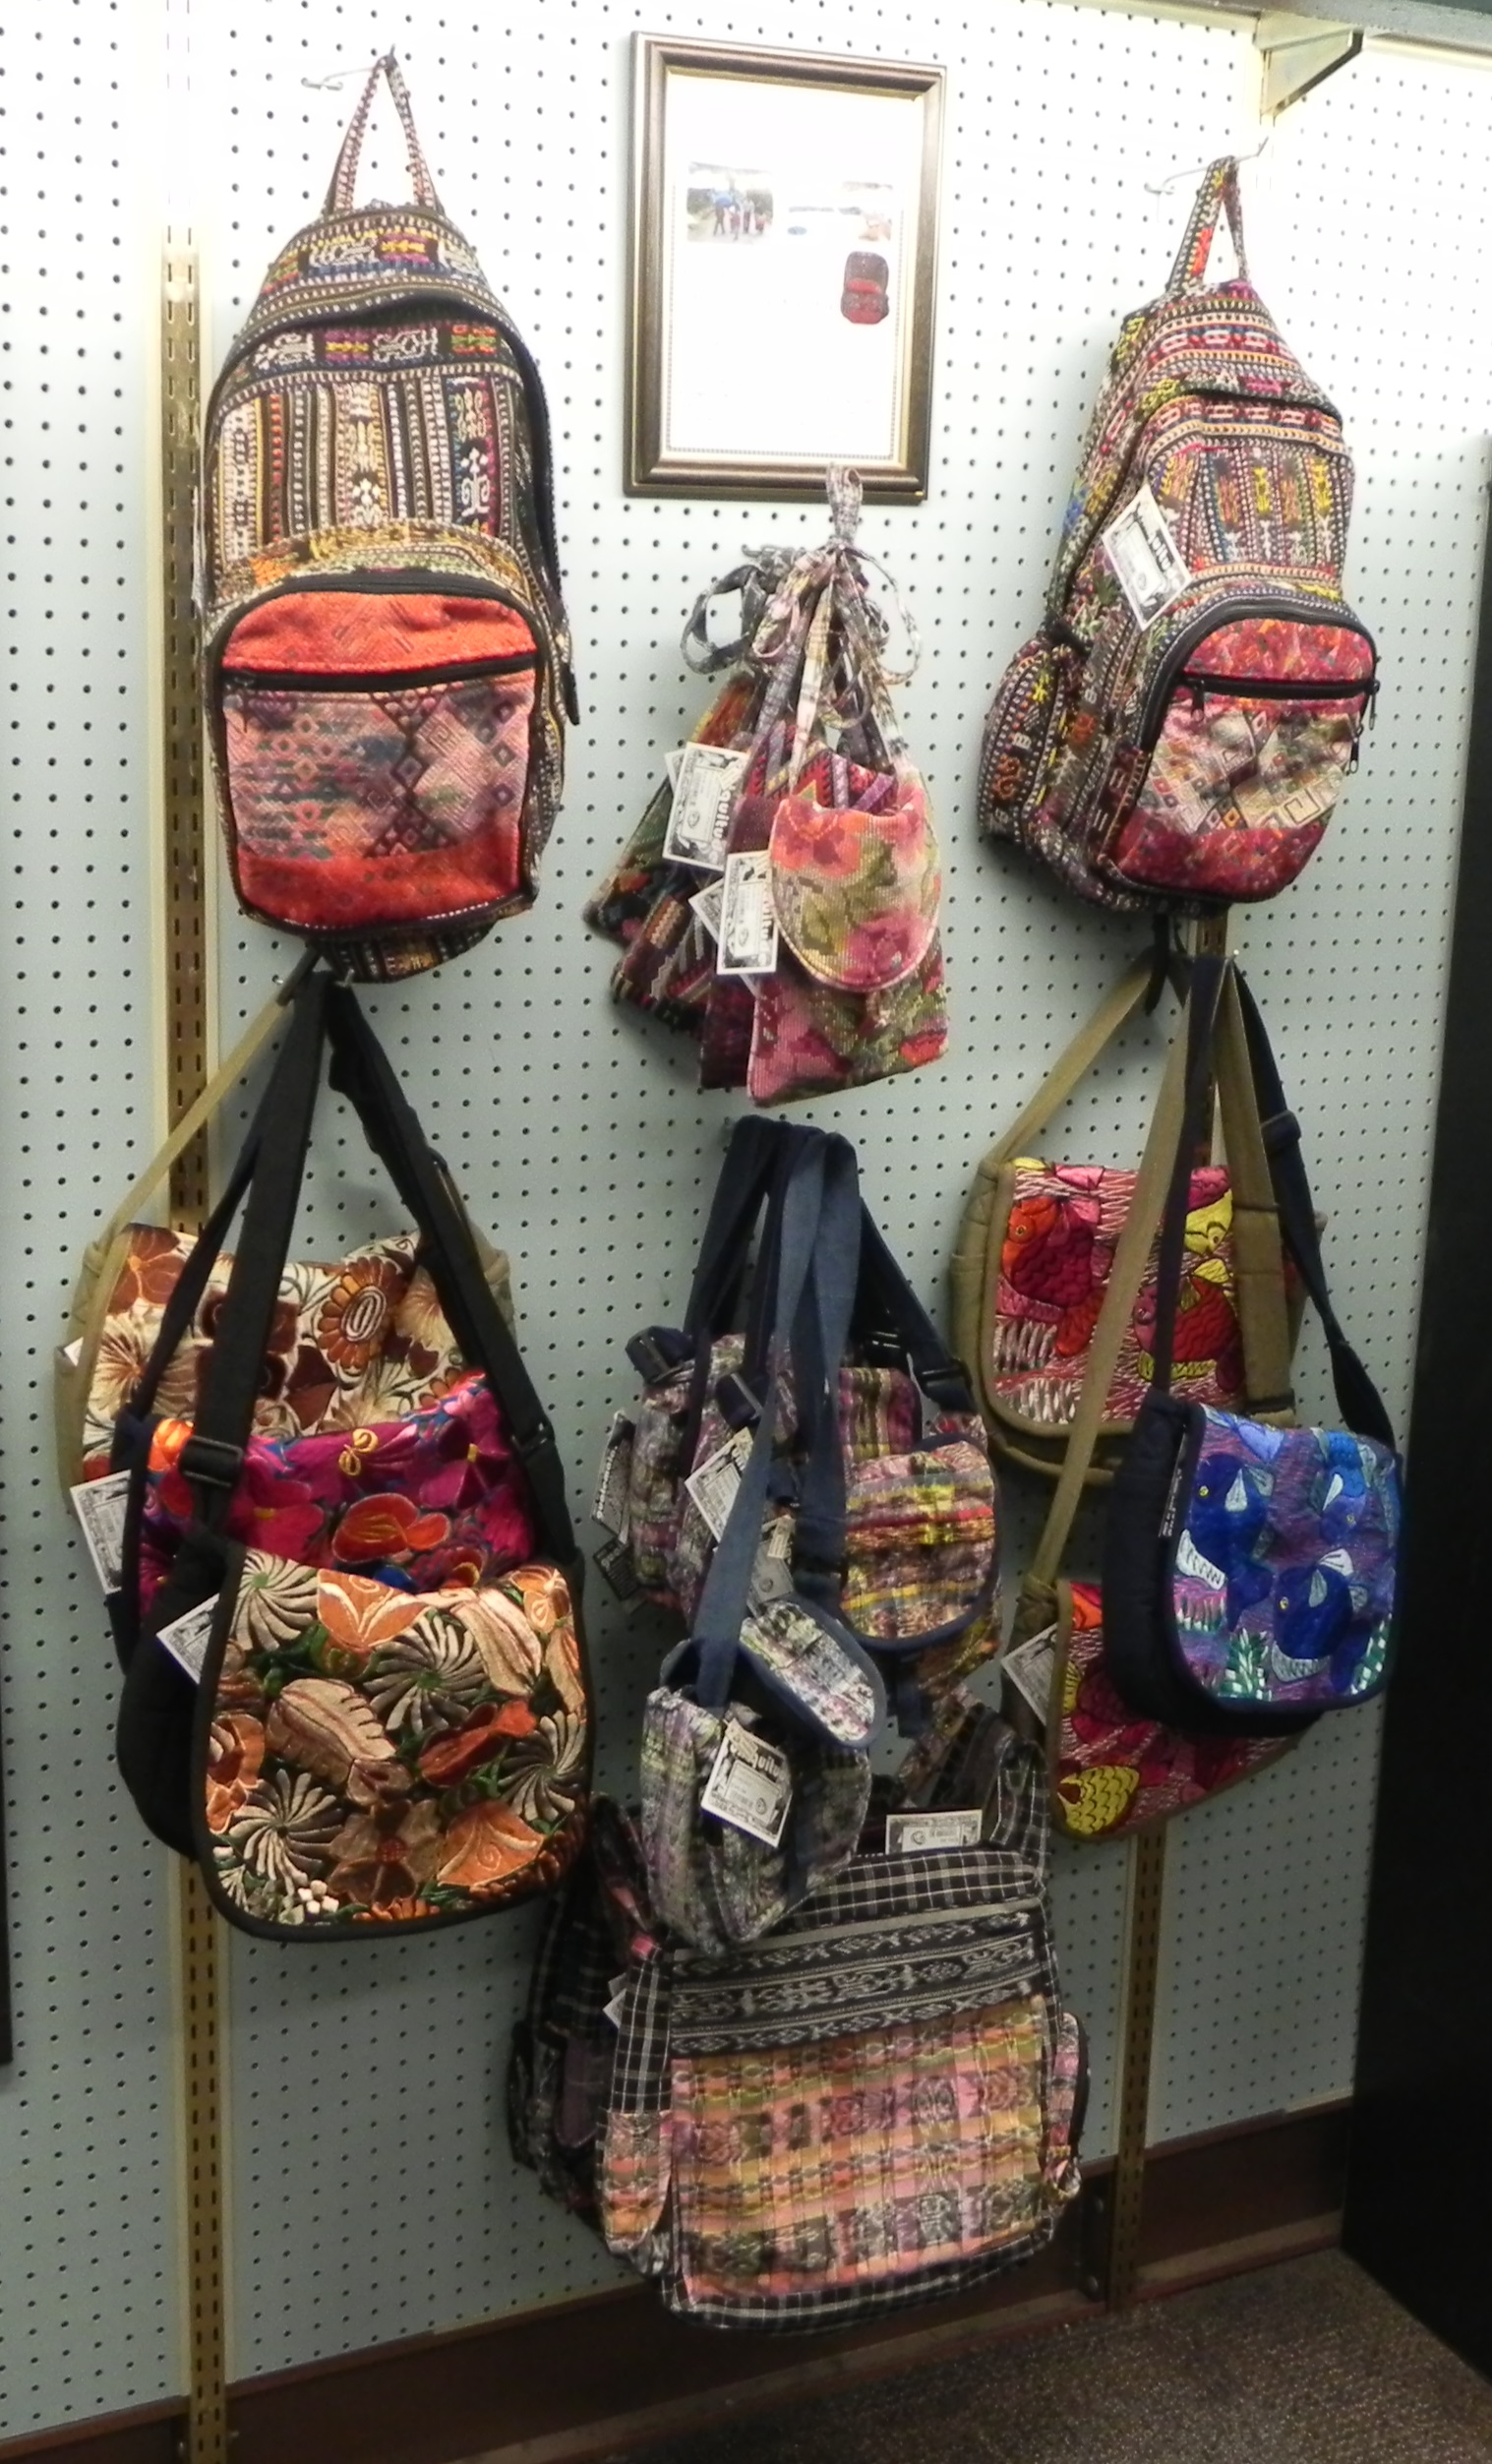 These bags and others like them are some of several fair-trade goods Beaver Bookstore sells.